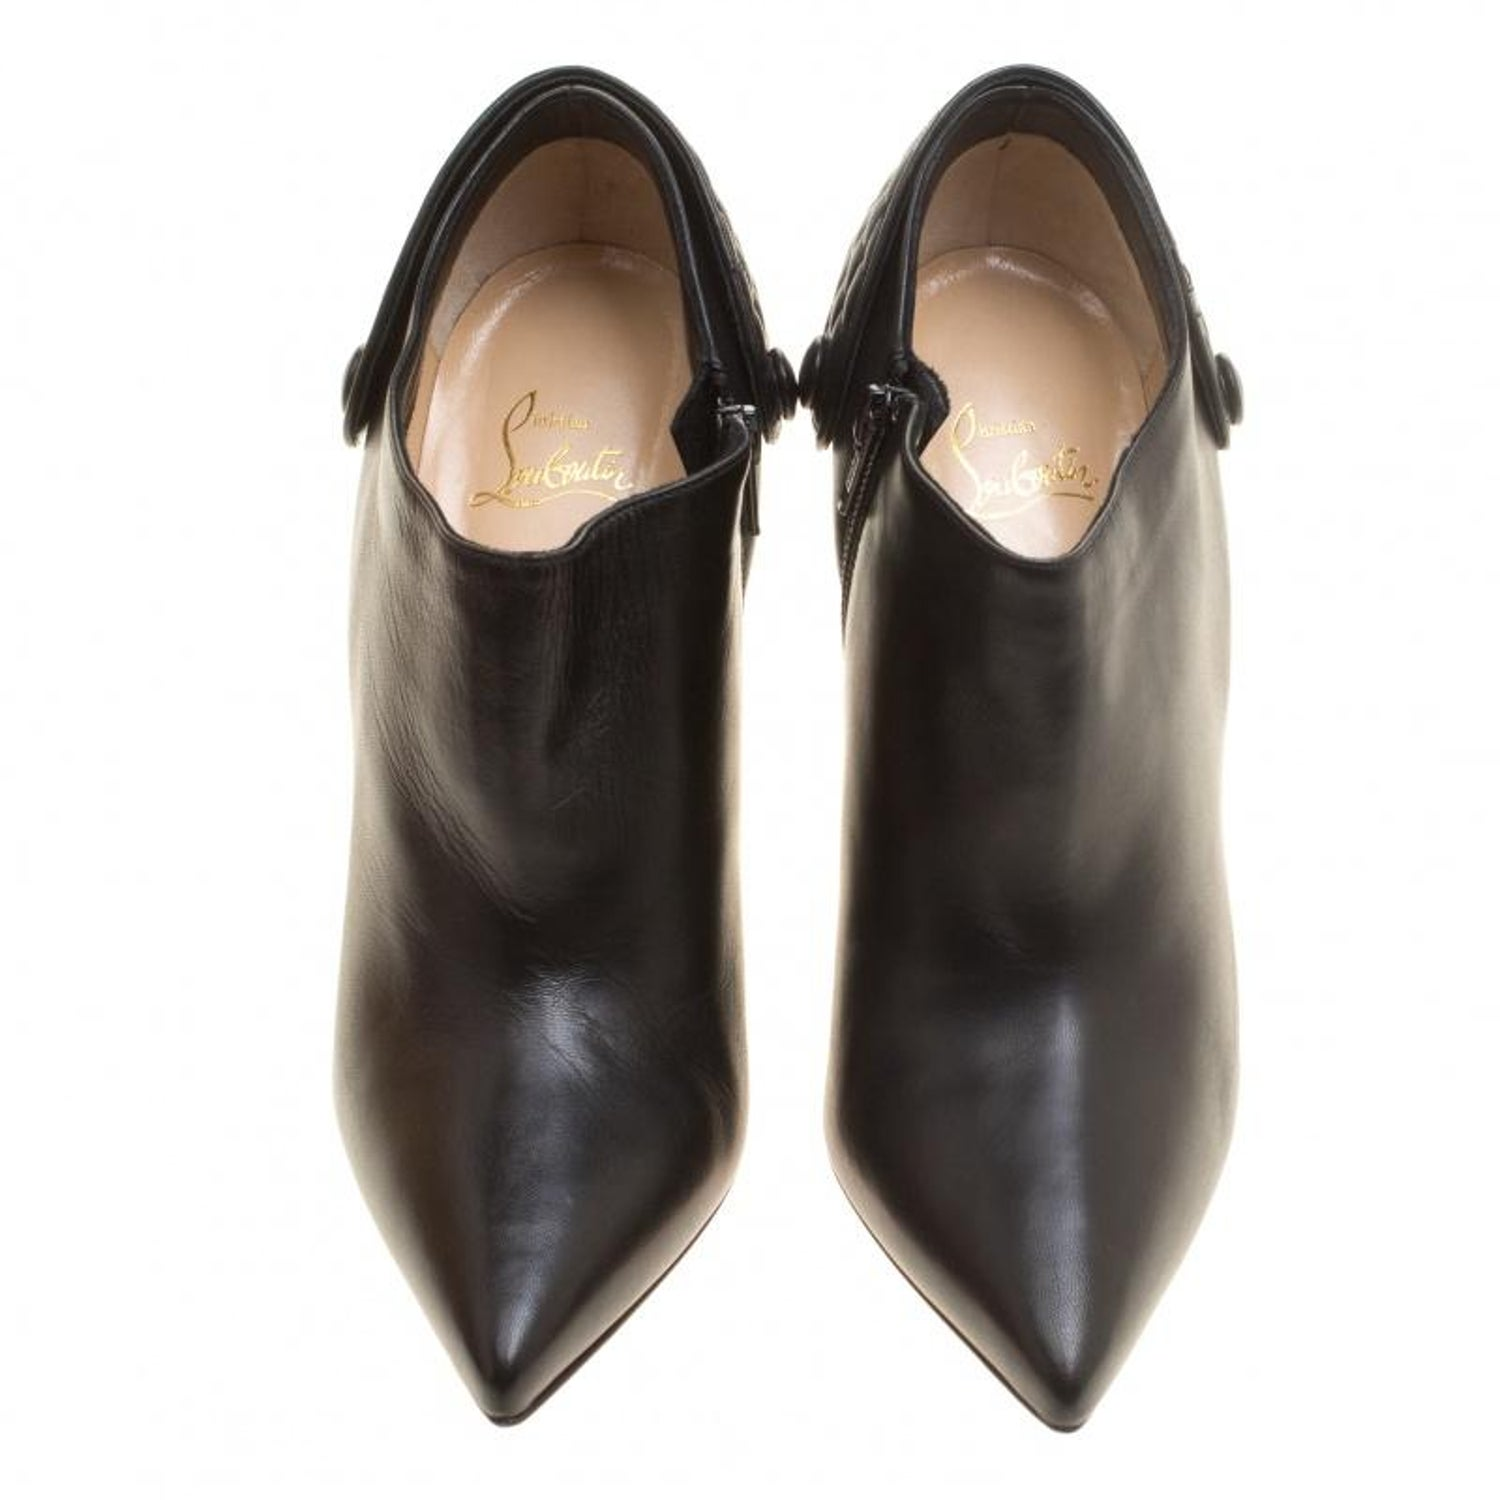 80cb6a5cdcc4 Christian Louboutin Black Leather Huguette Pointed Toe Ankle Booties Size 41  For Sale at 1stdibs